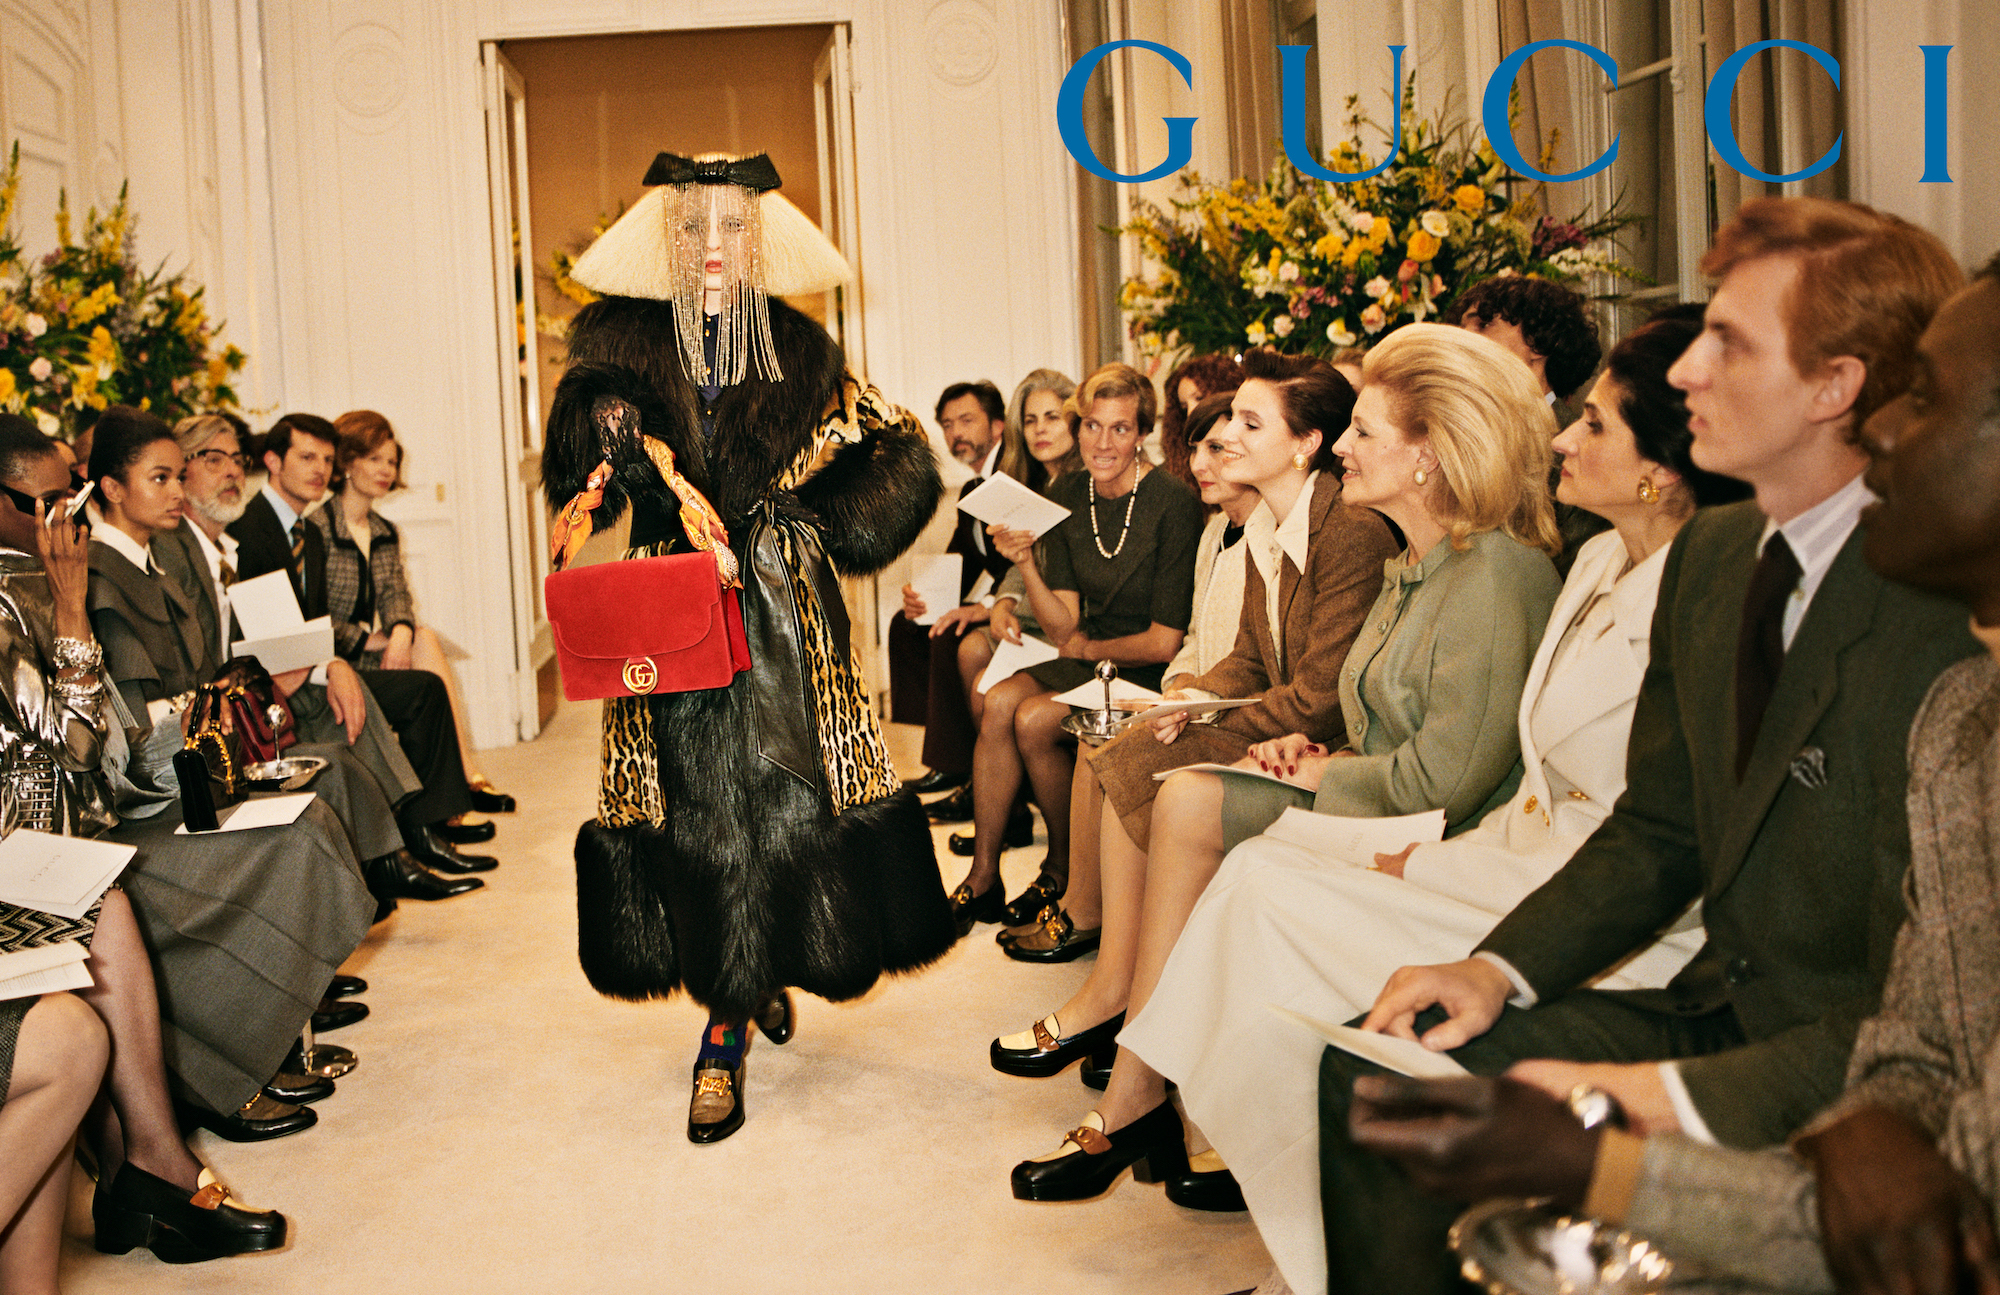 Gucci AW19 campaign shot by Glen Luchford catwalk